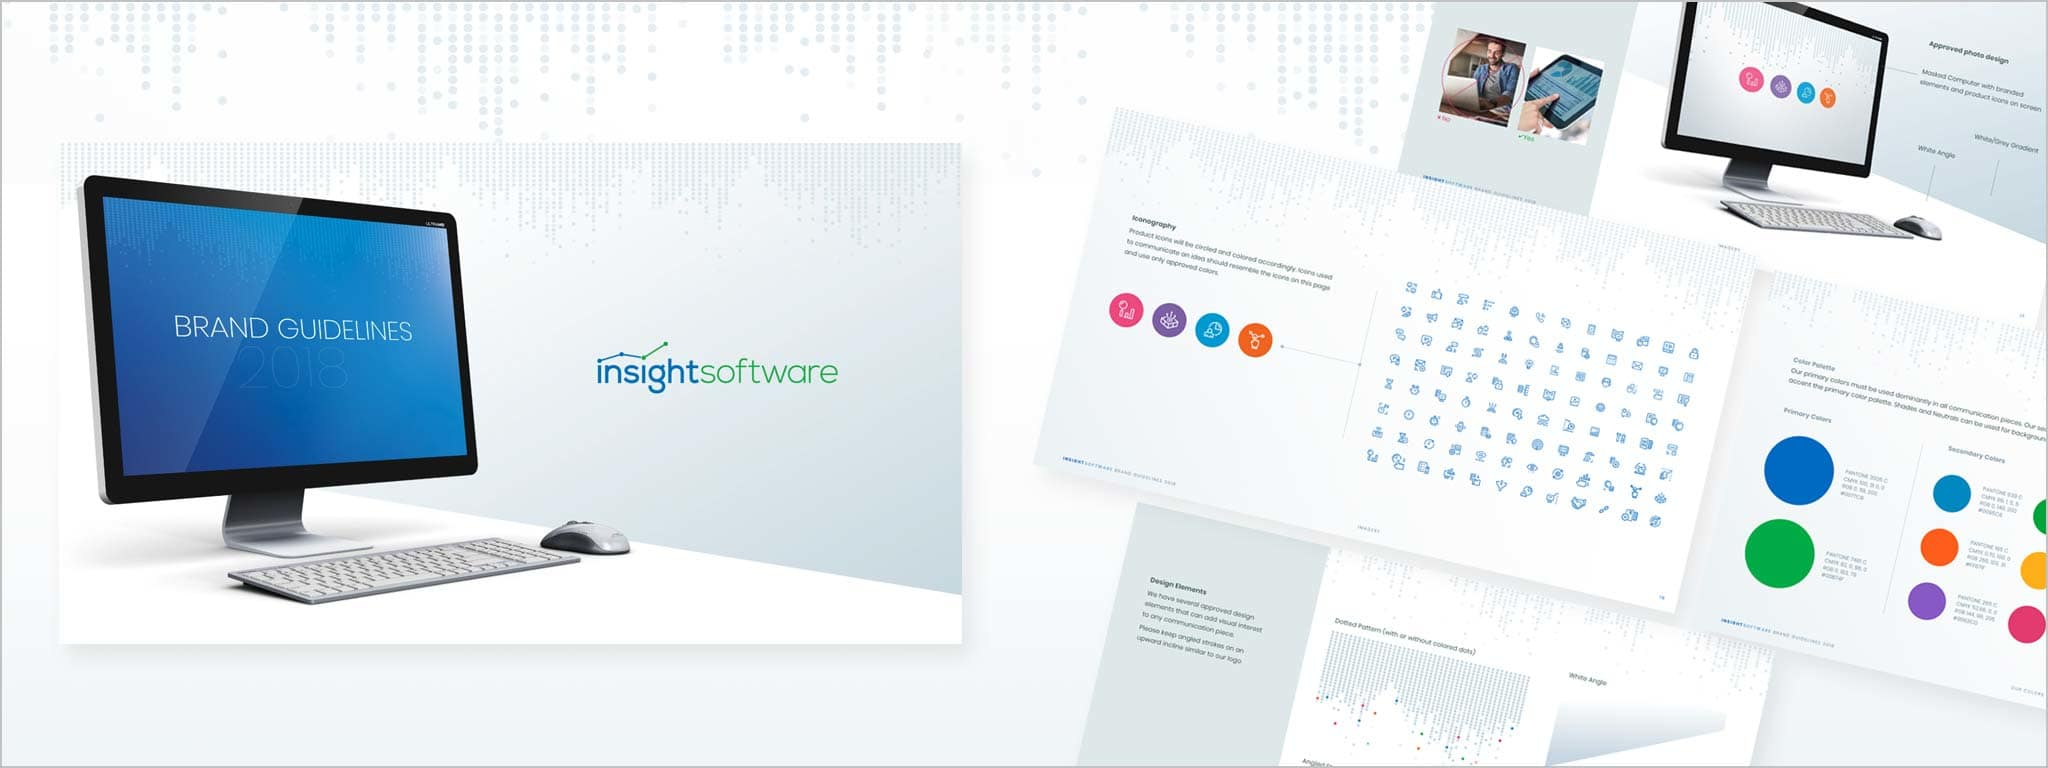 insightsoftware-rebrand